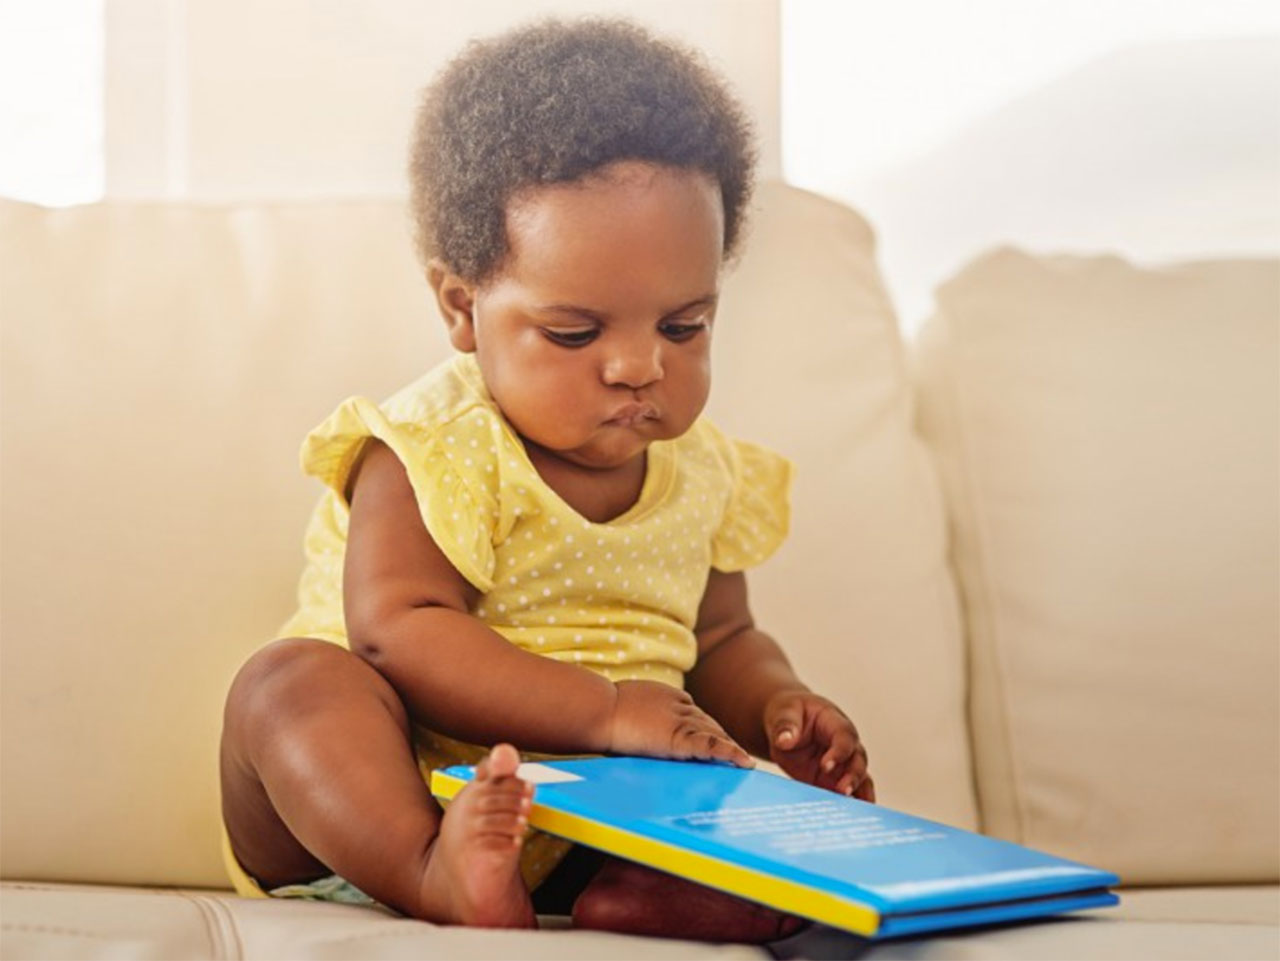 baby reading a book on the couch